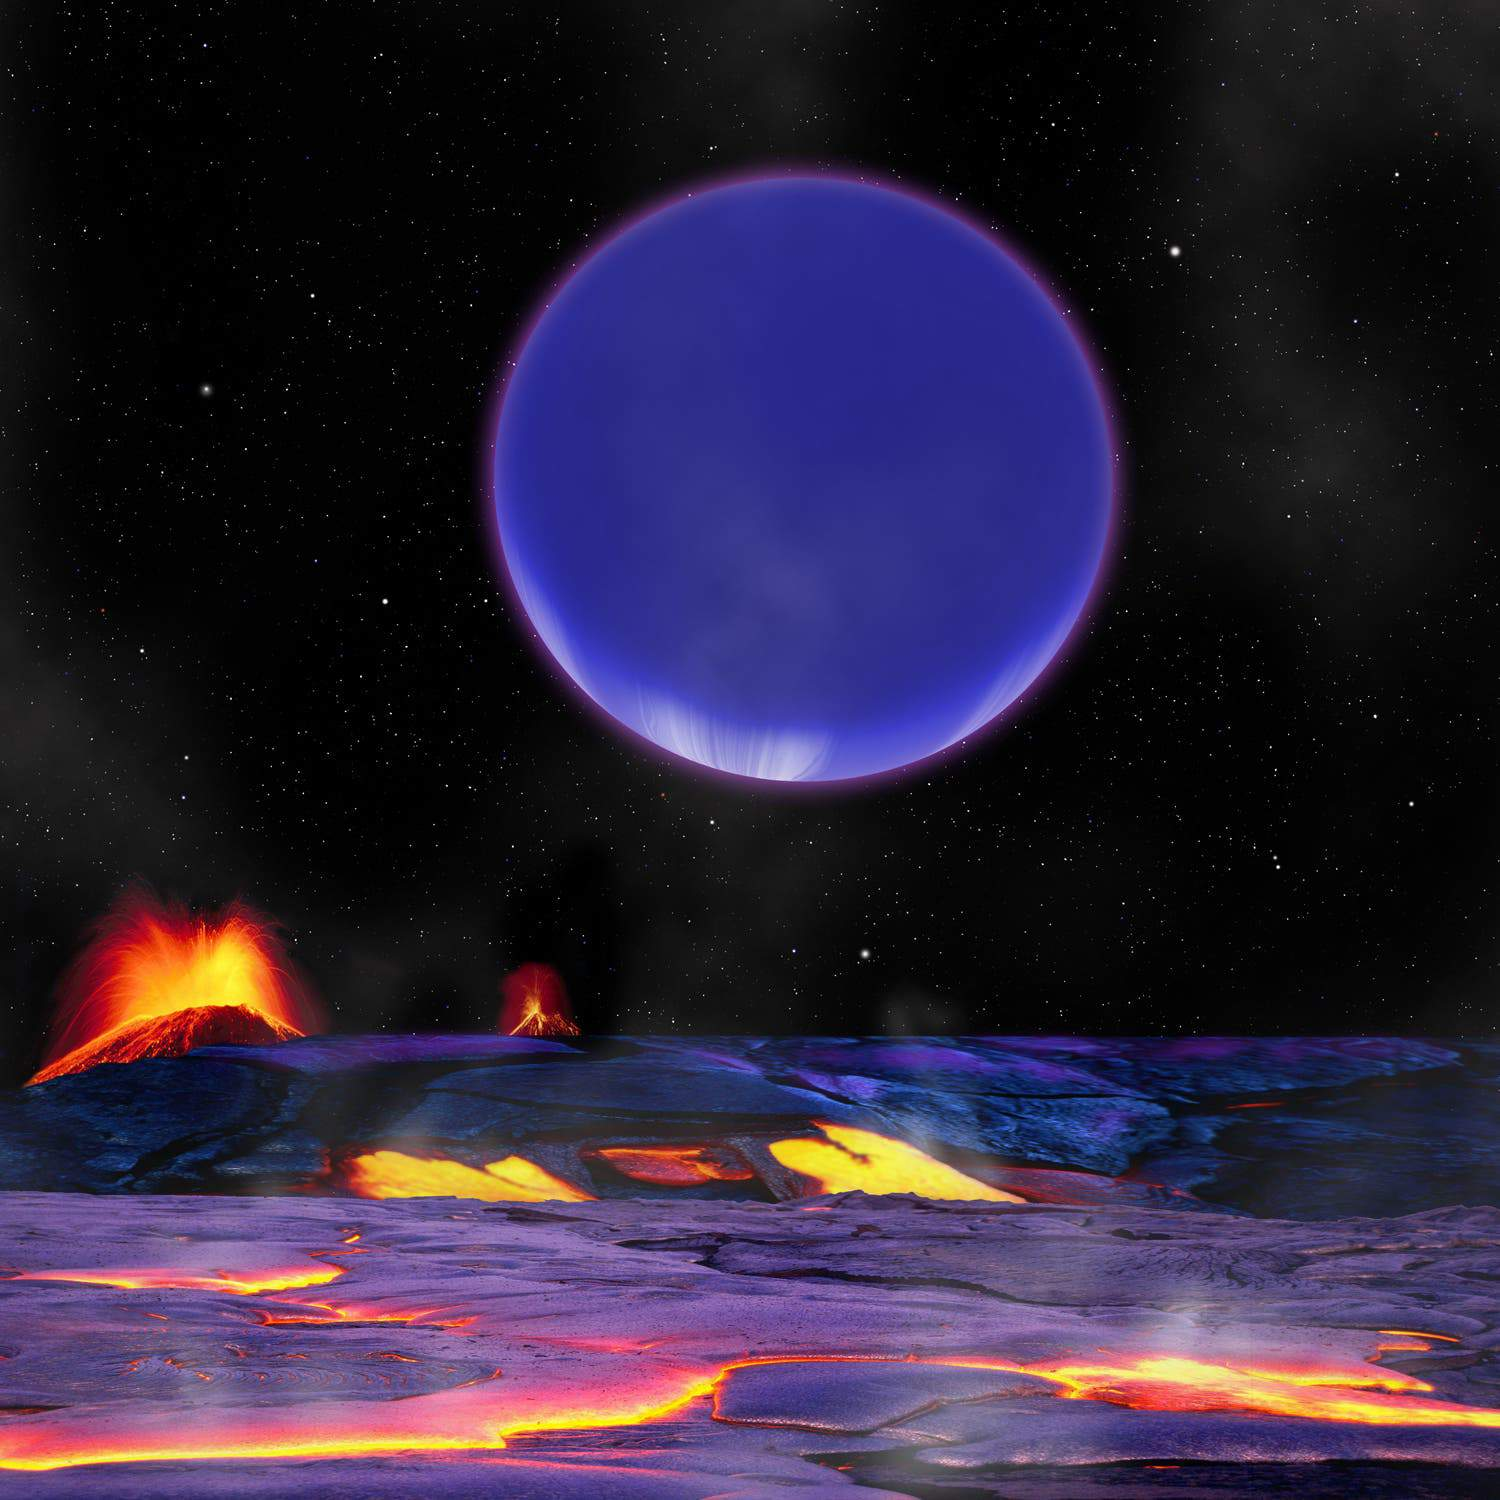 Artist impression shows a beautiful, purple Kepler-36c dominating the skyline, as seen from the surface of the smaller Kepler-36b. (c) David Aguilar, Harvard-Smithsonian Center for Astrophysics